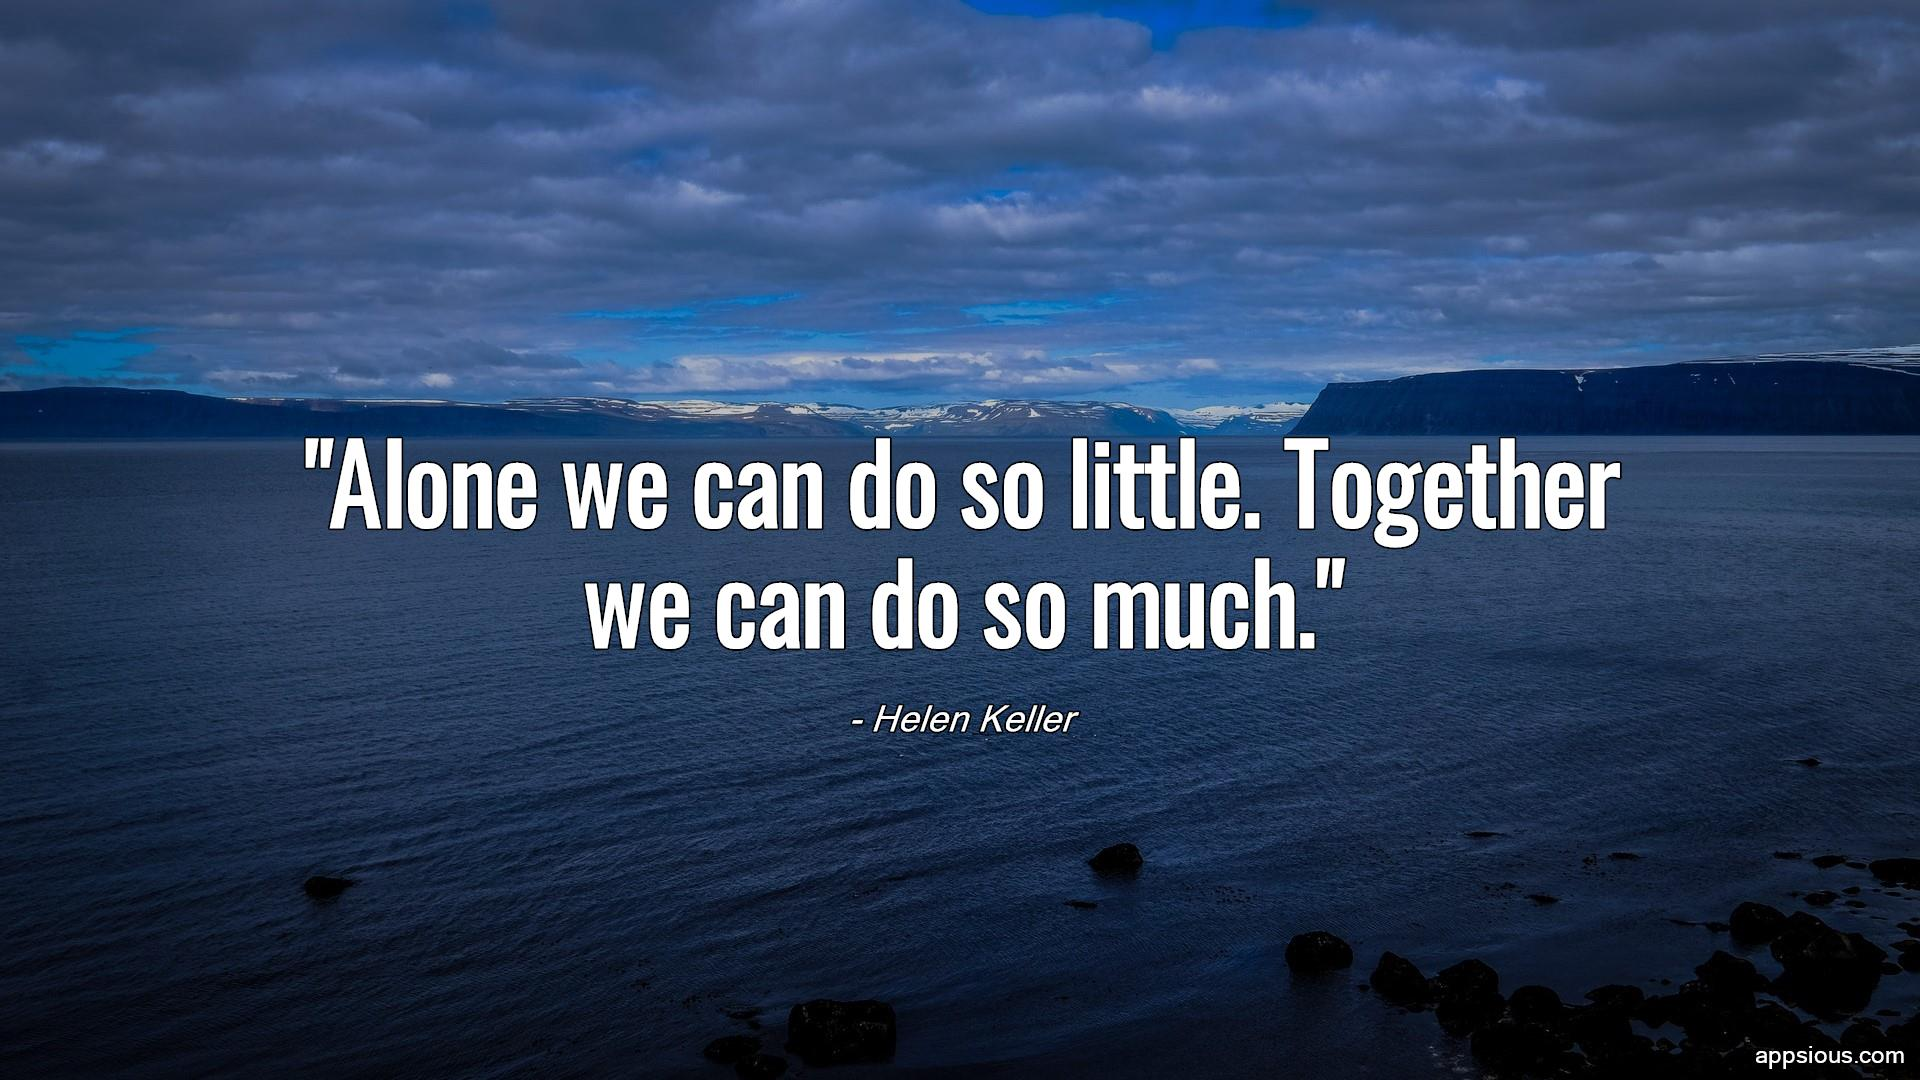 Alone we can do so little. Together we can do so much.